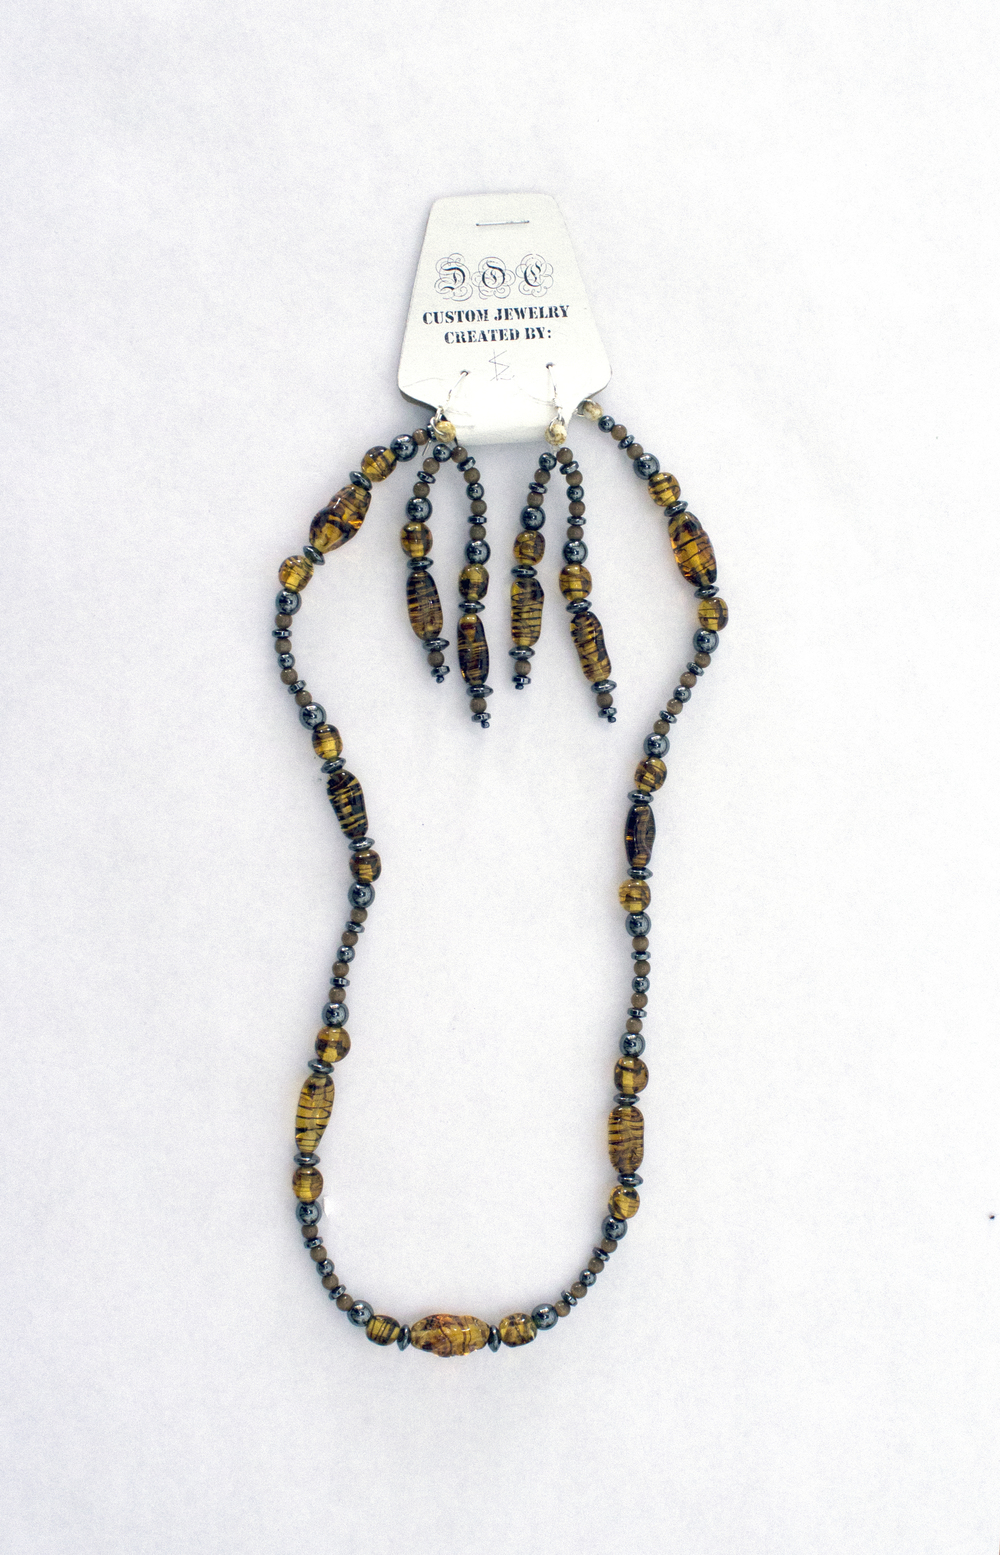 Shannon L. - Beaded Necklace